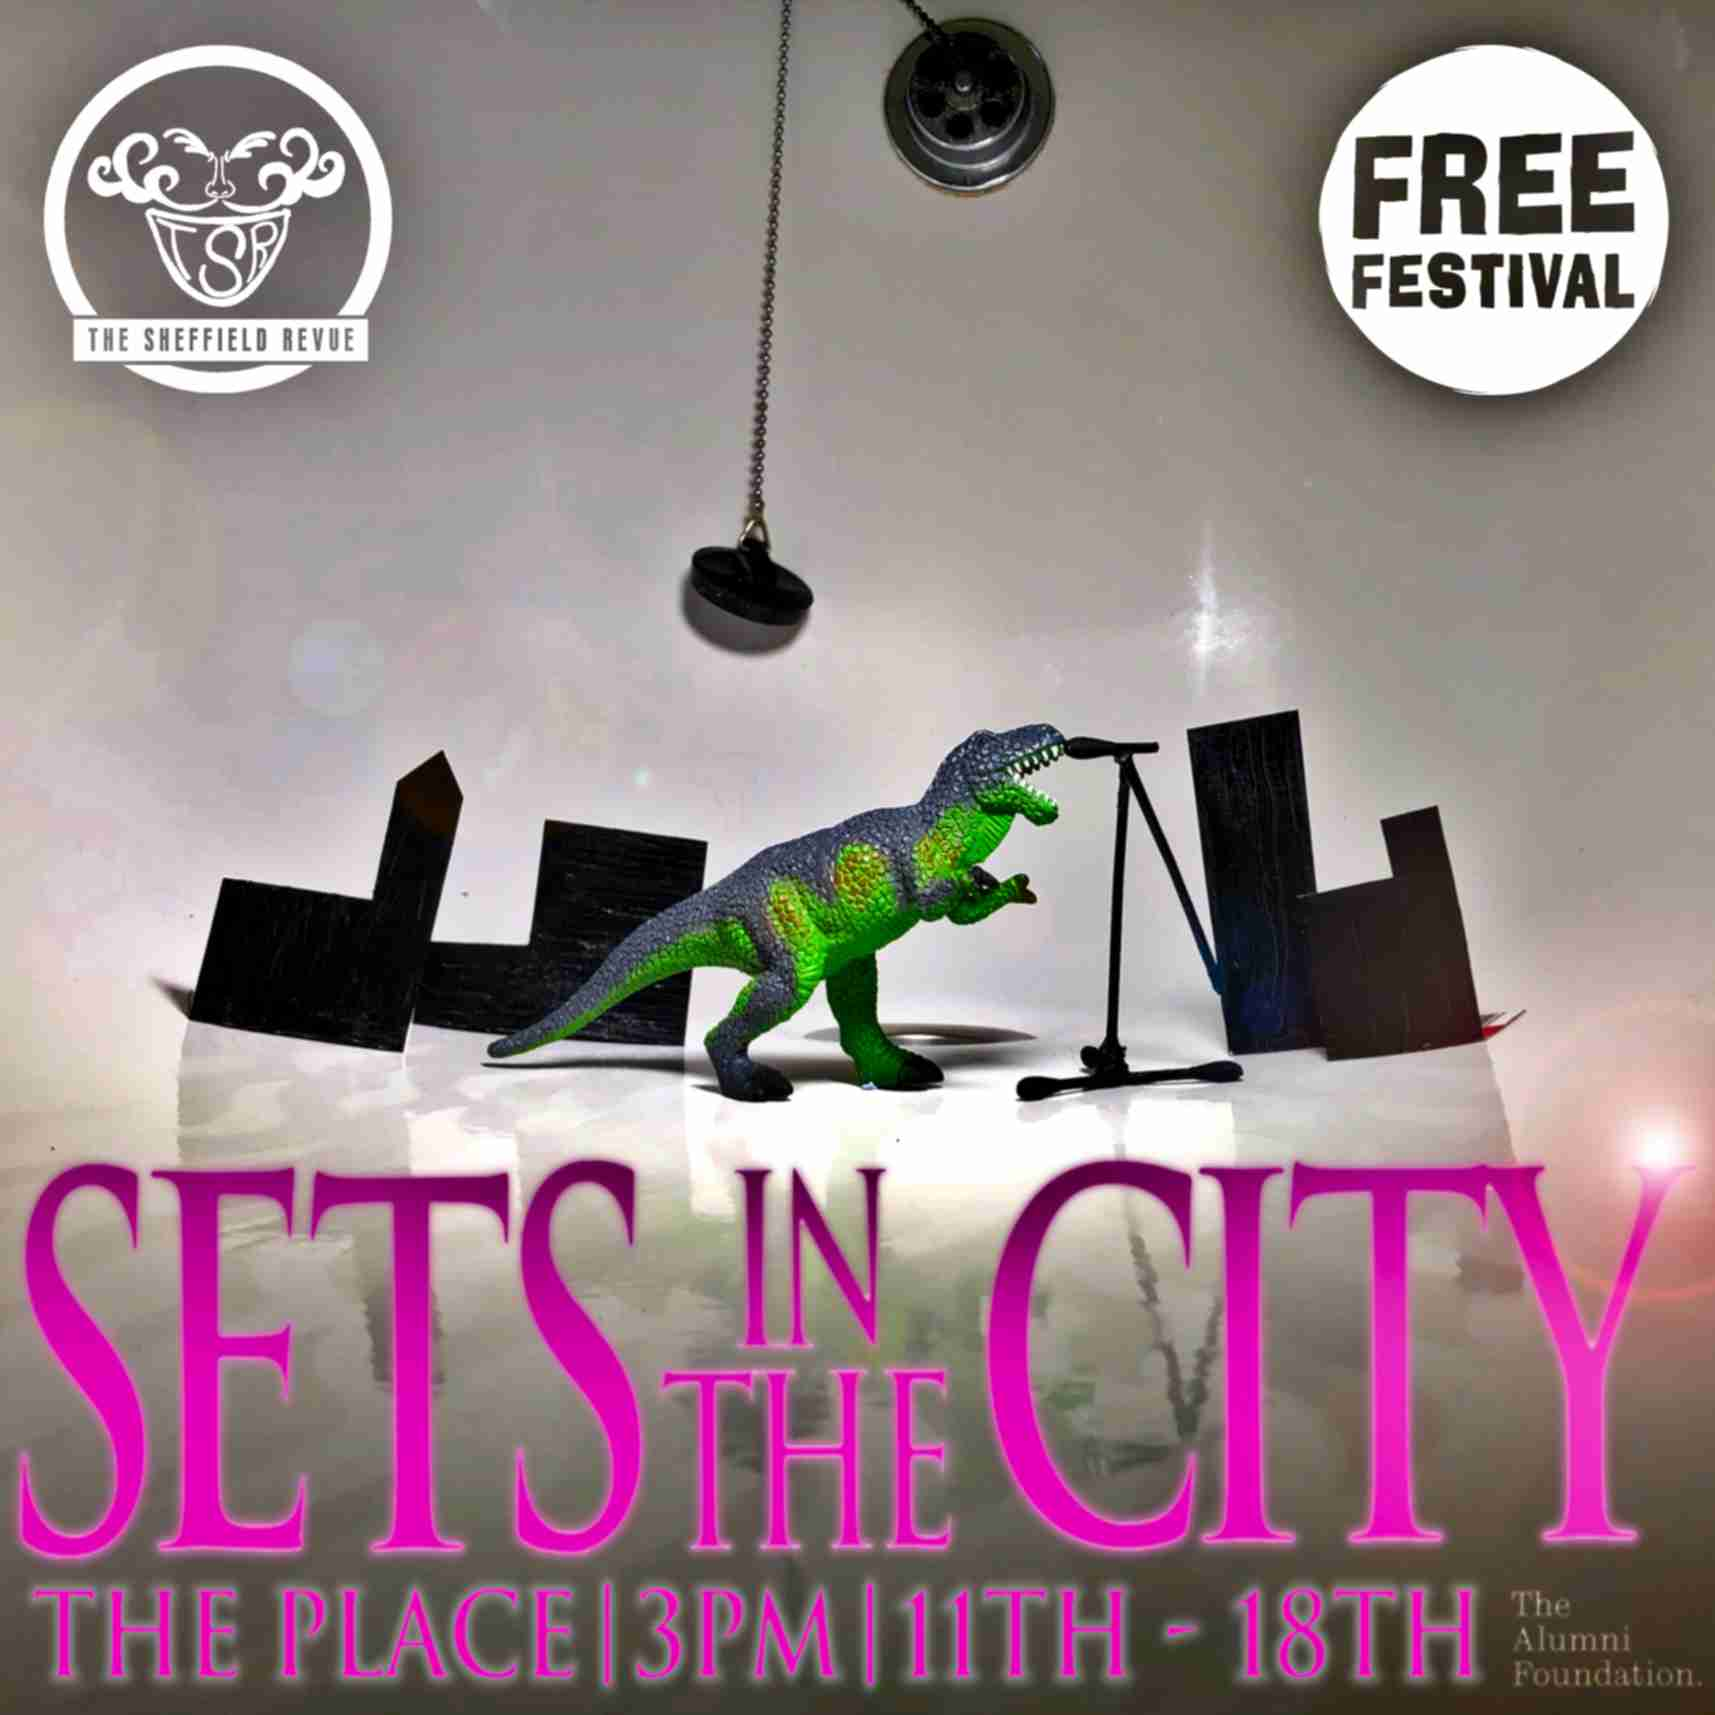 Sets in the City - Free